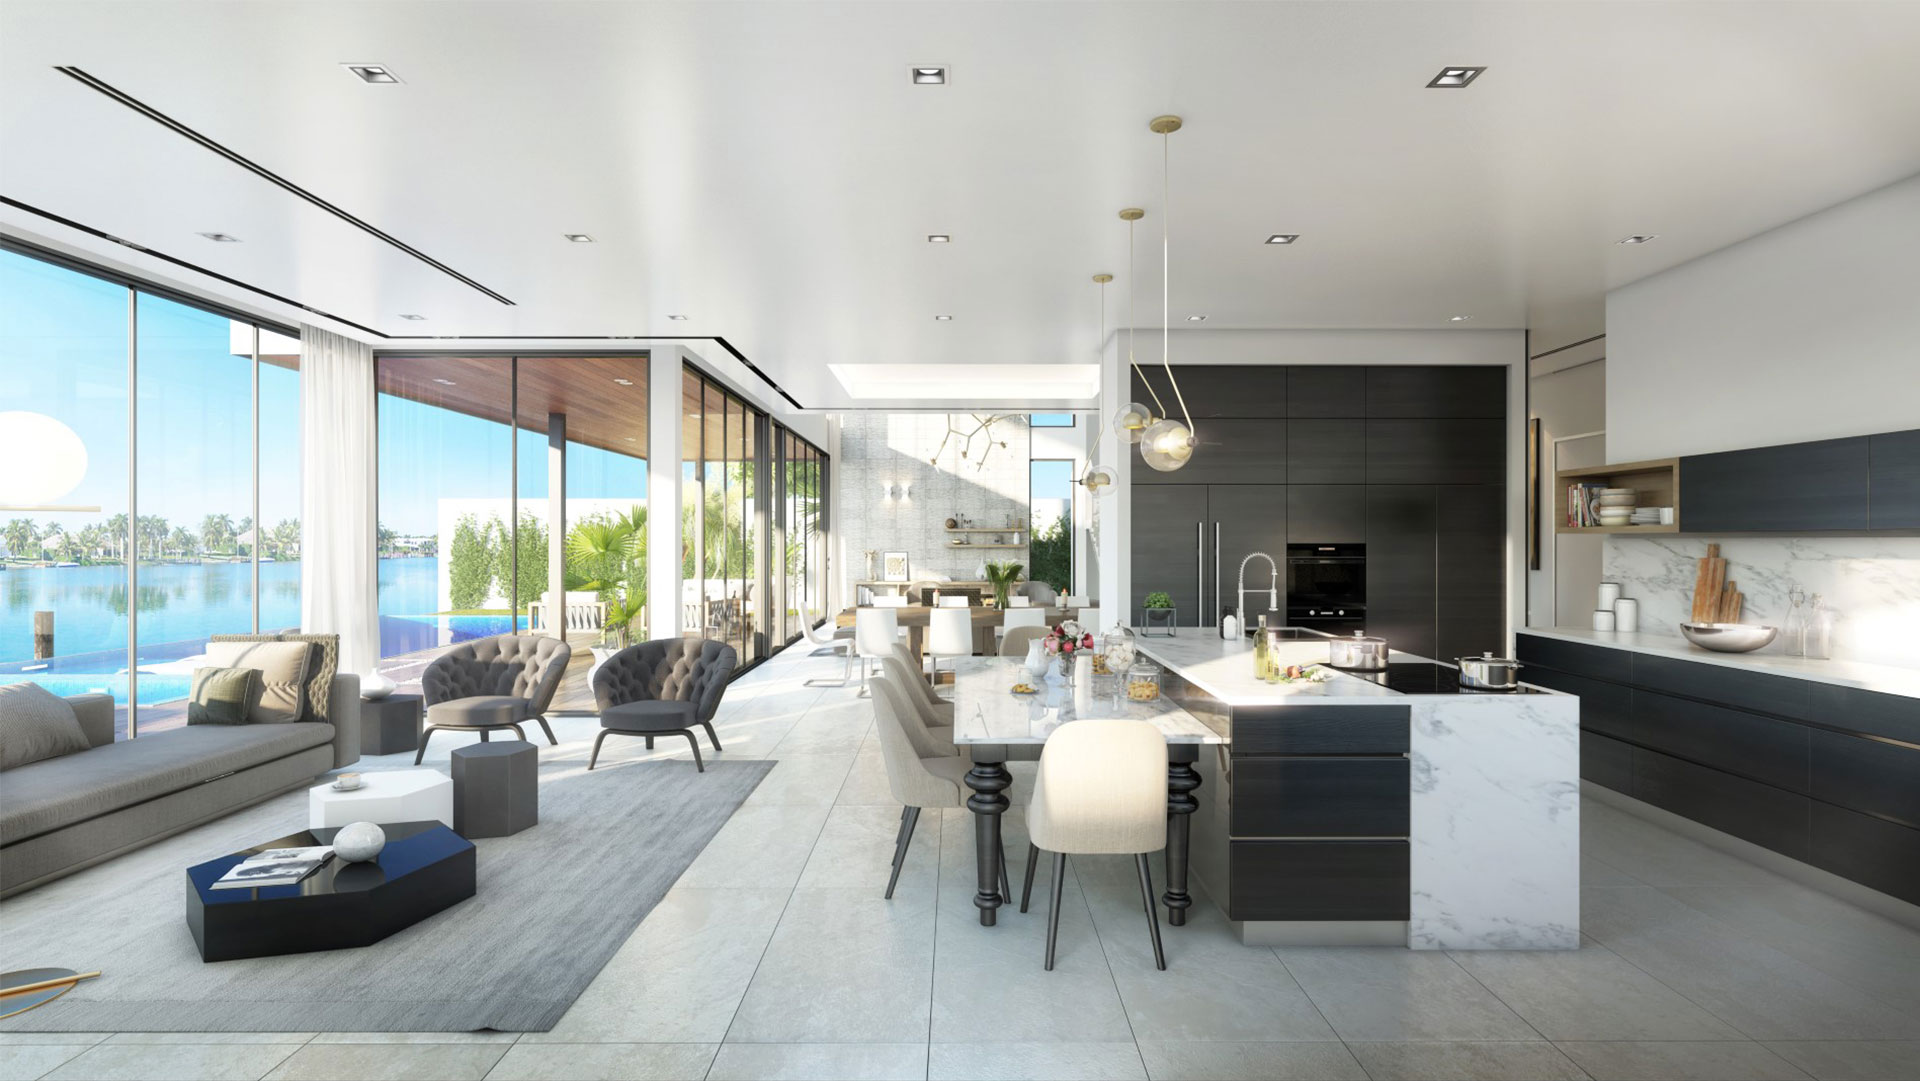 Interior View architecture at 1537 Fort Lauderdale